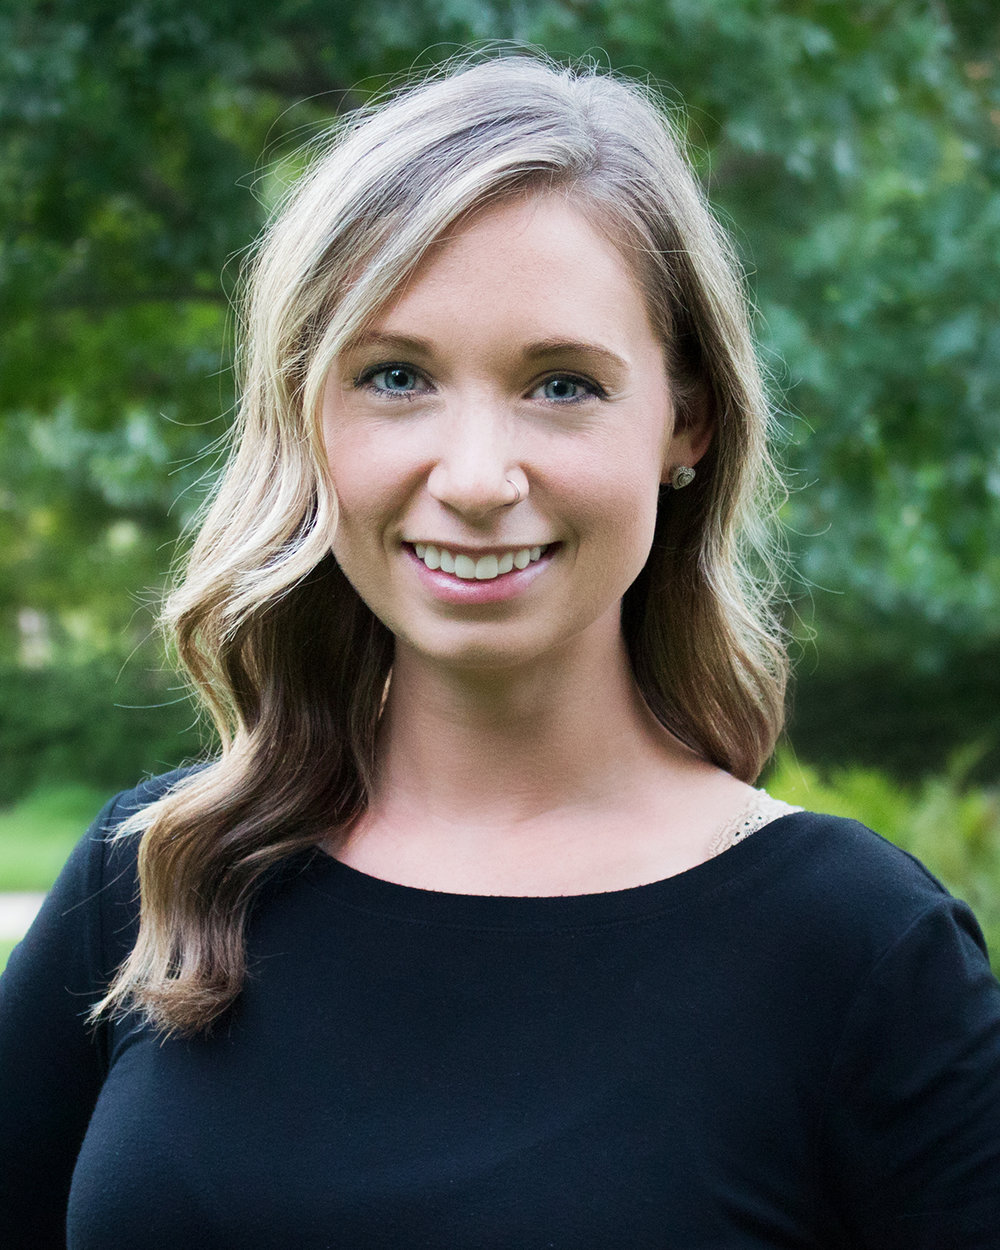 Ashley Stults, M.S., LPC-Intern, Under the Supervision of Dr. Ryan Holliman, LPC-S - Licensed Professional Counselor- InternEMDR TrainedInsurance: N/APrivate Pay Rate: $75Location: Denton, Texas